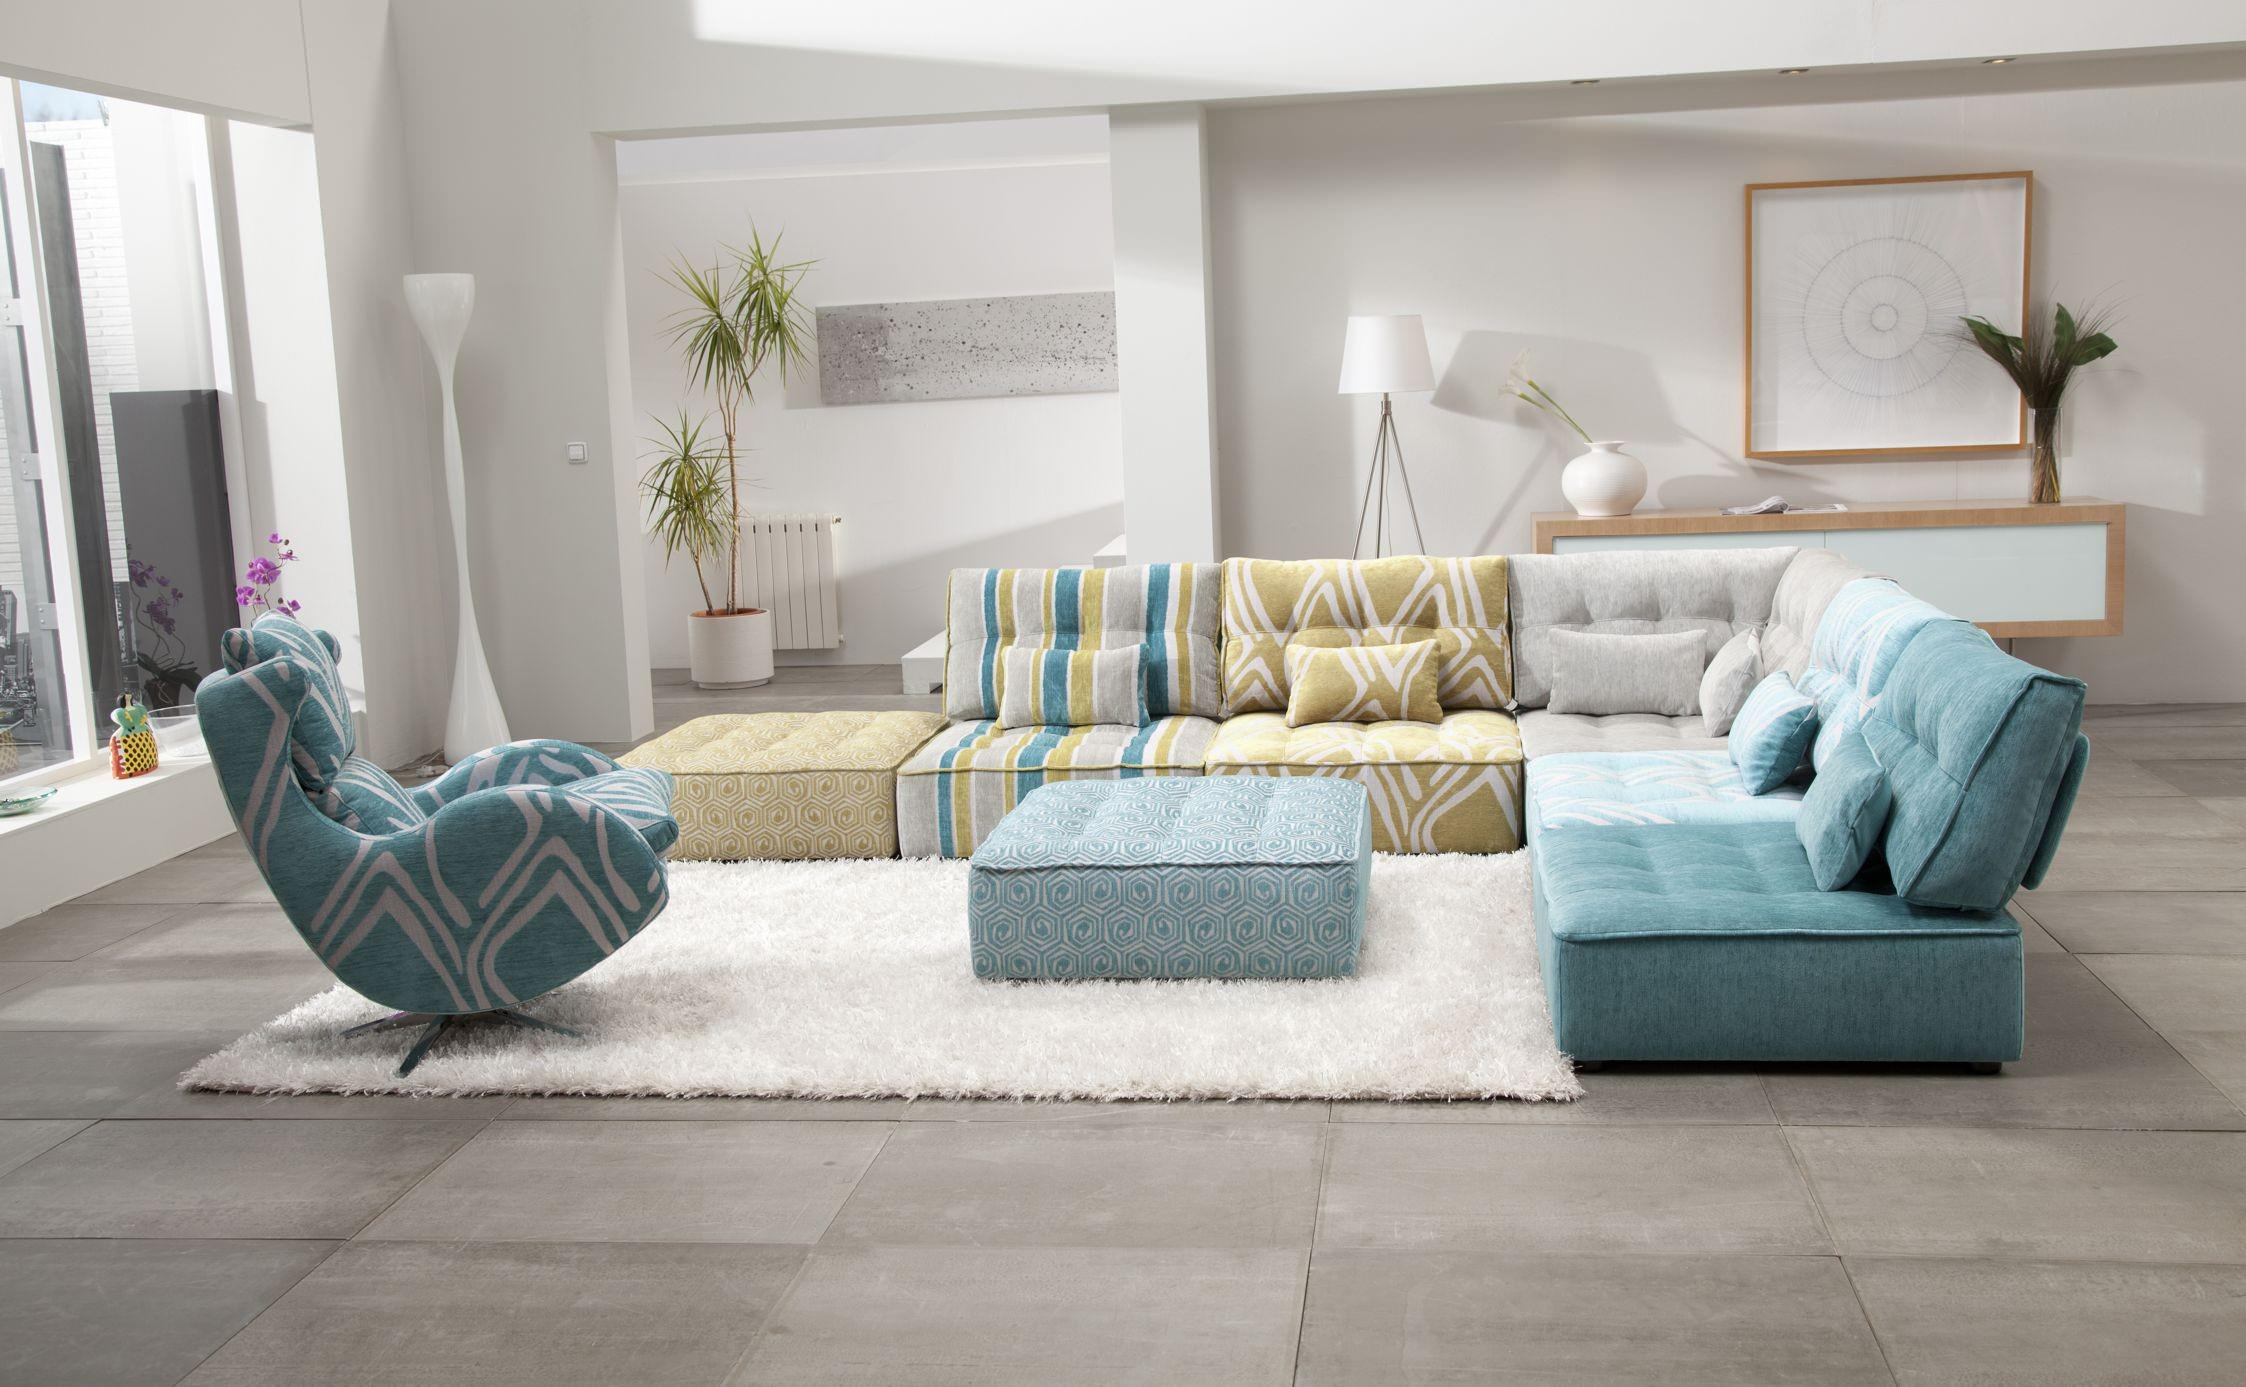 blue ocean sectionals sofas with white area rugs and high lamps